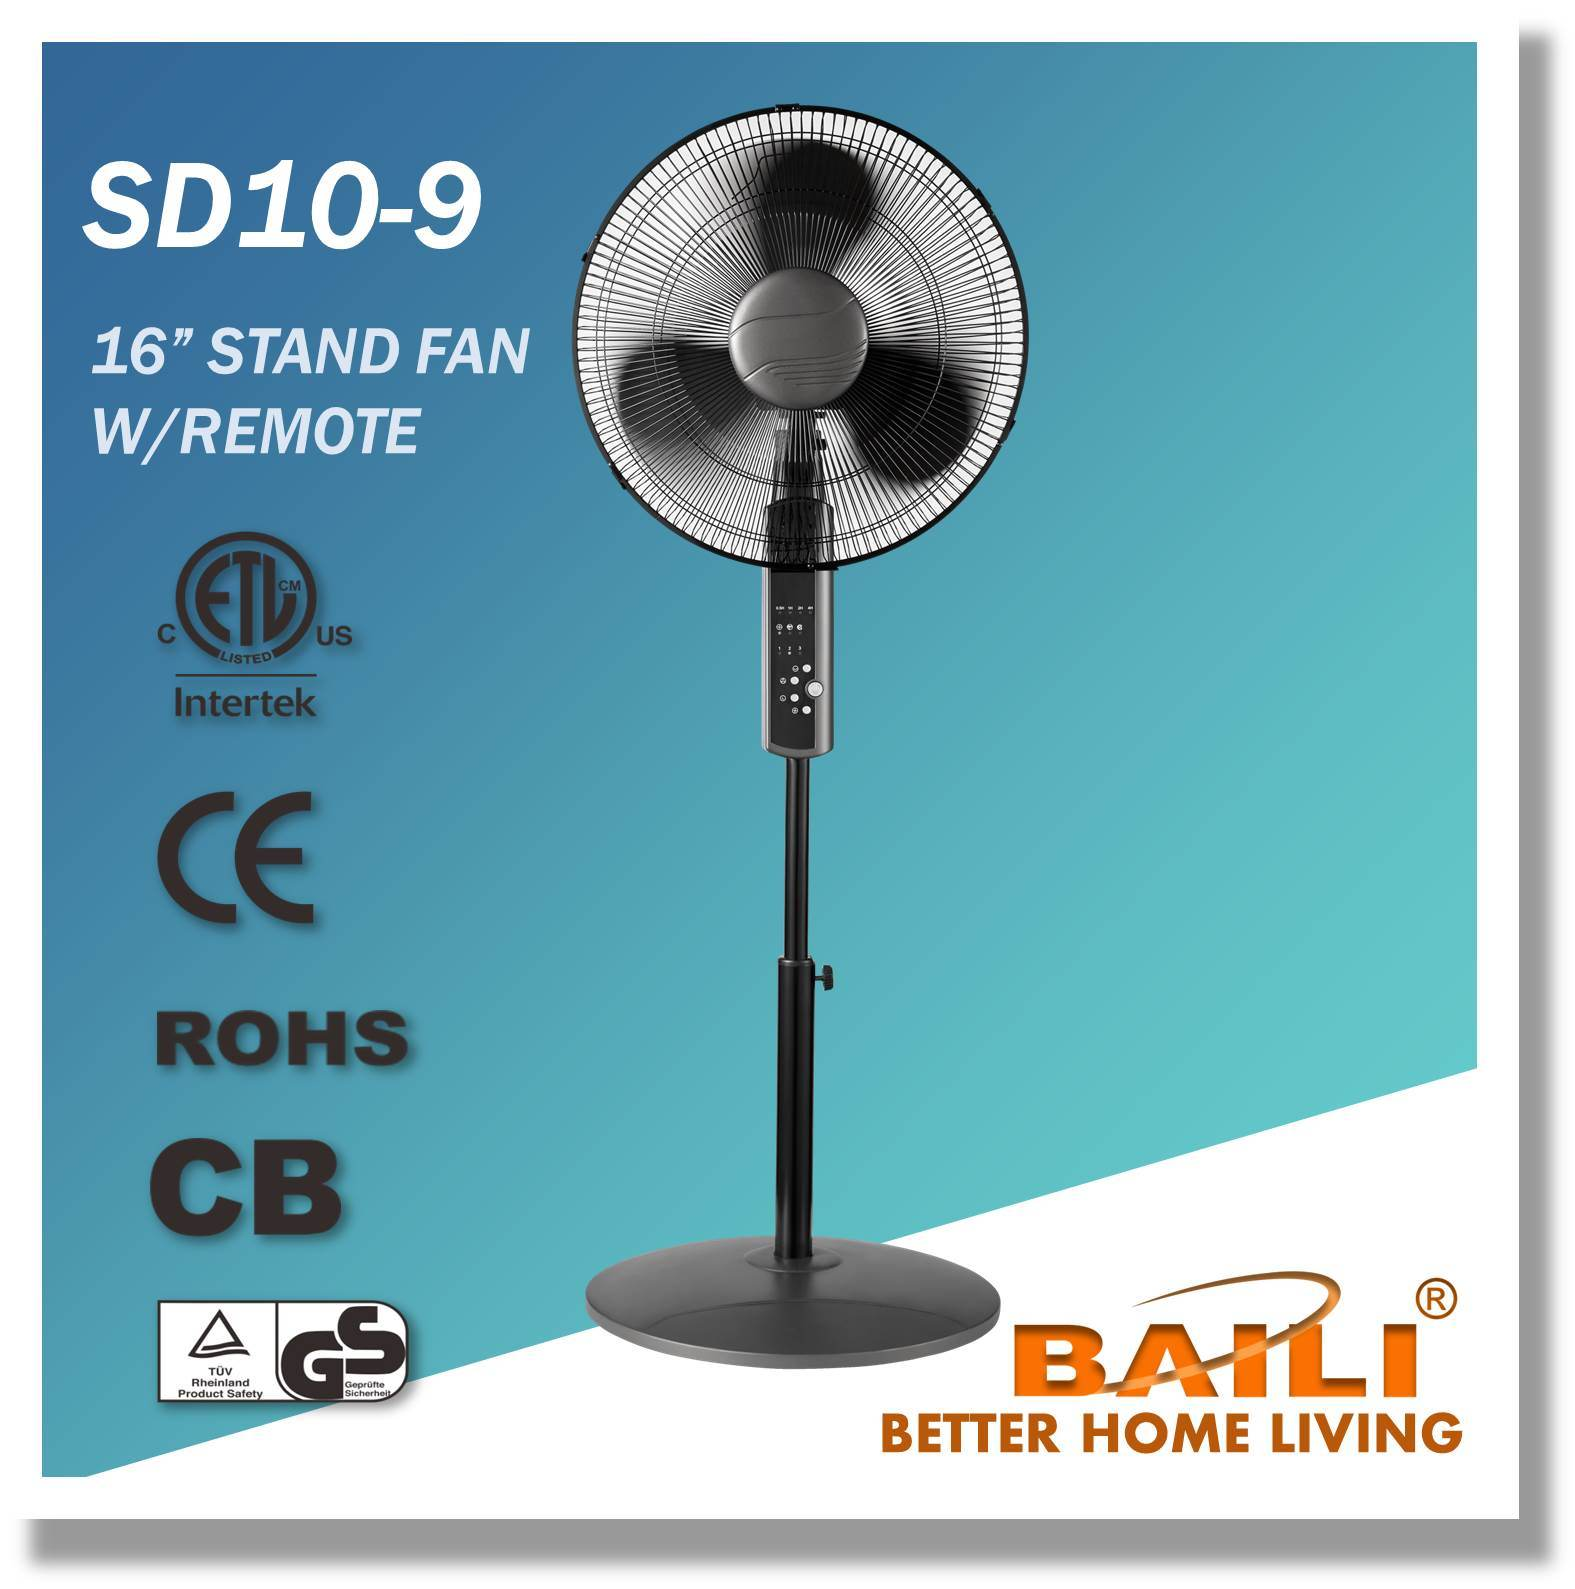 16 Inch High End Oscillating Stand Fan with Remote Control (Metallic Titanium Painting)